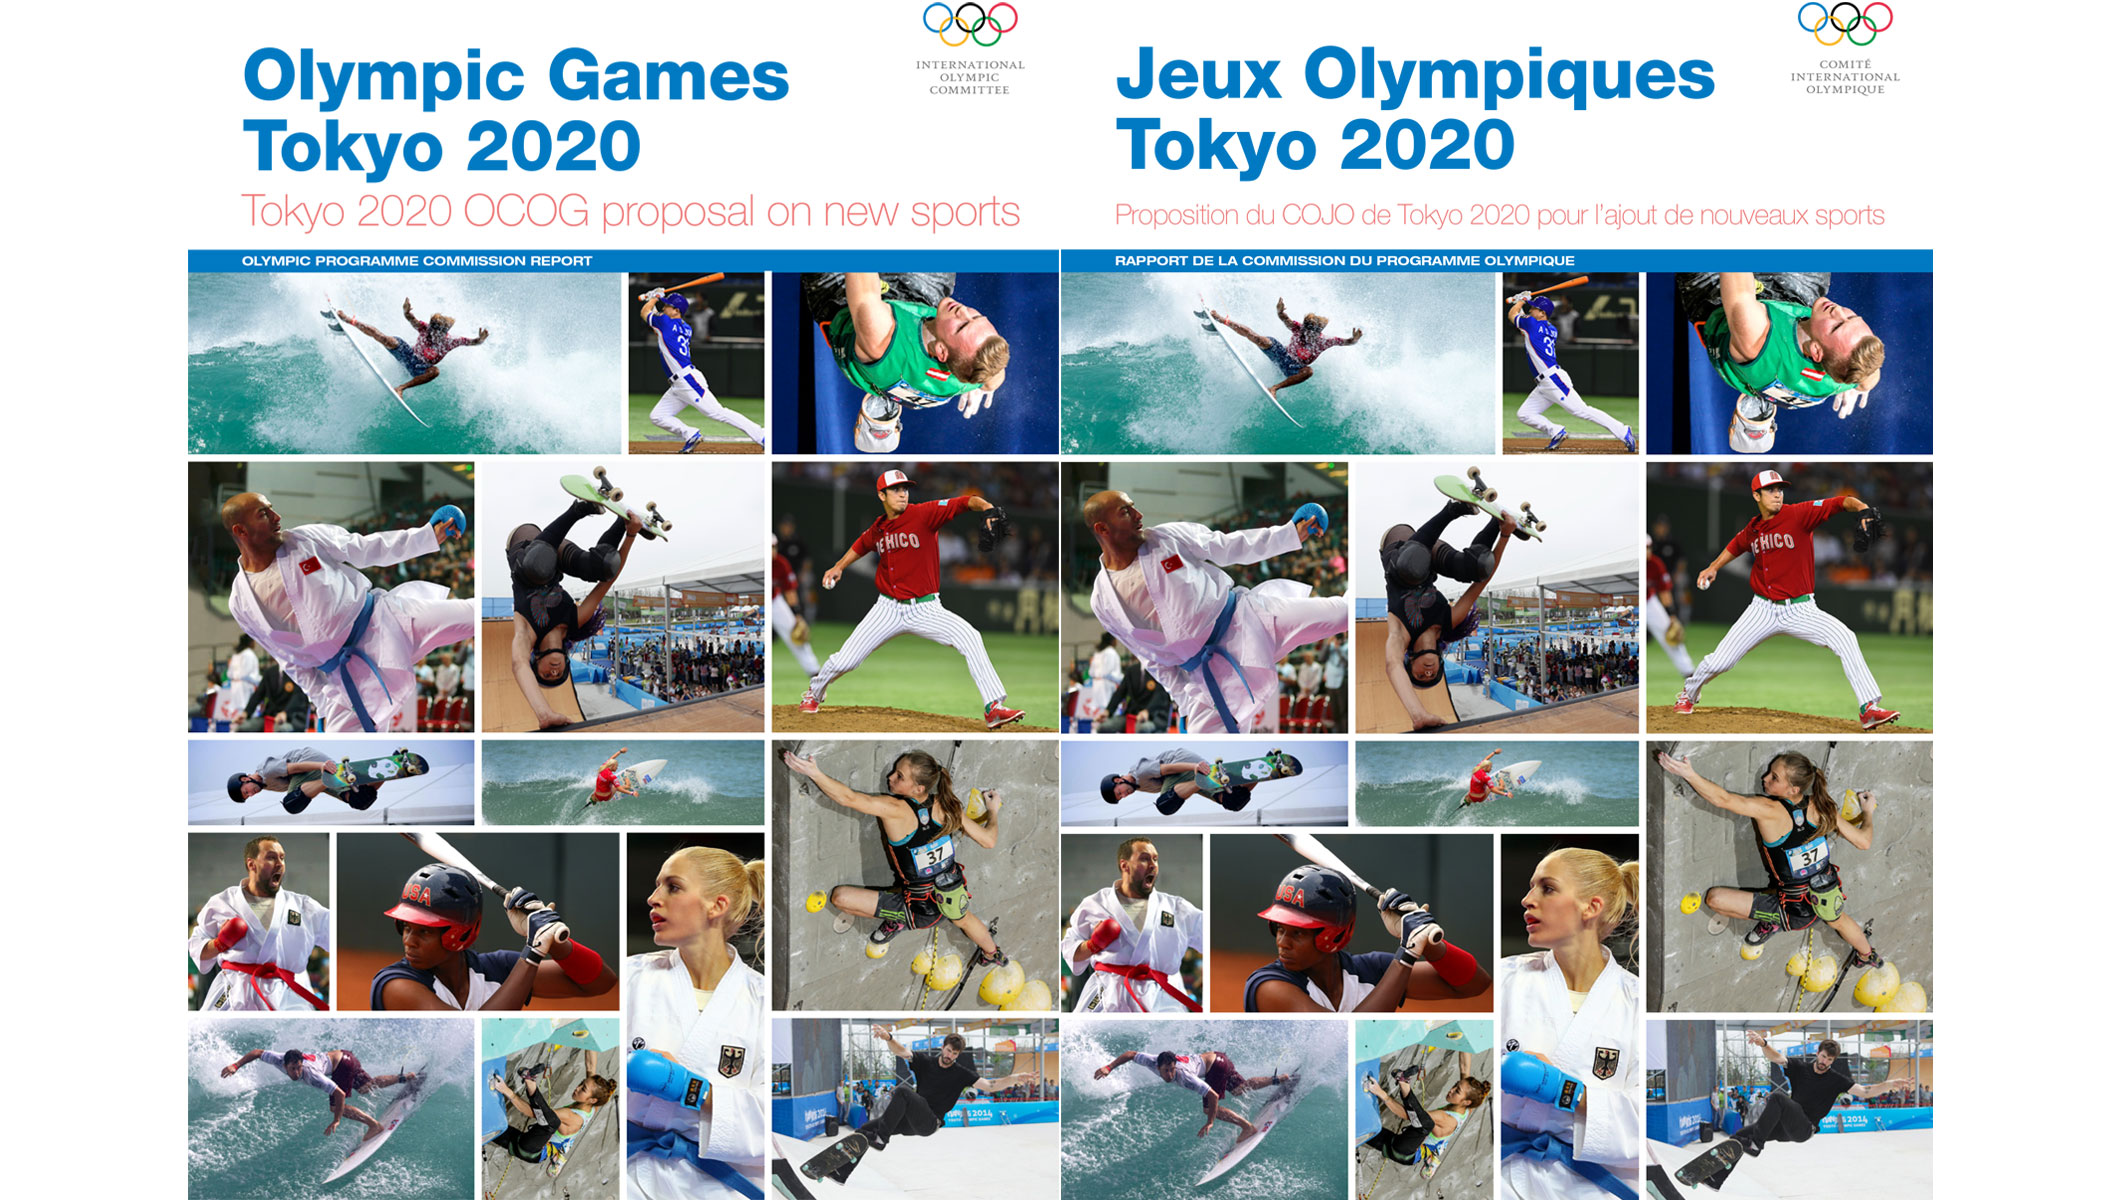 IOC Releases Olympic Programme Commission Report on Proposed Sports